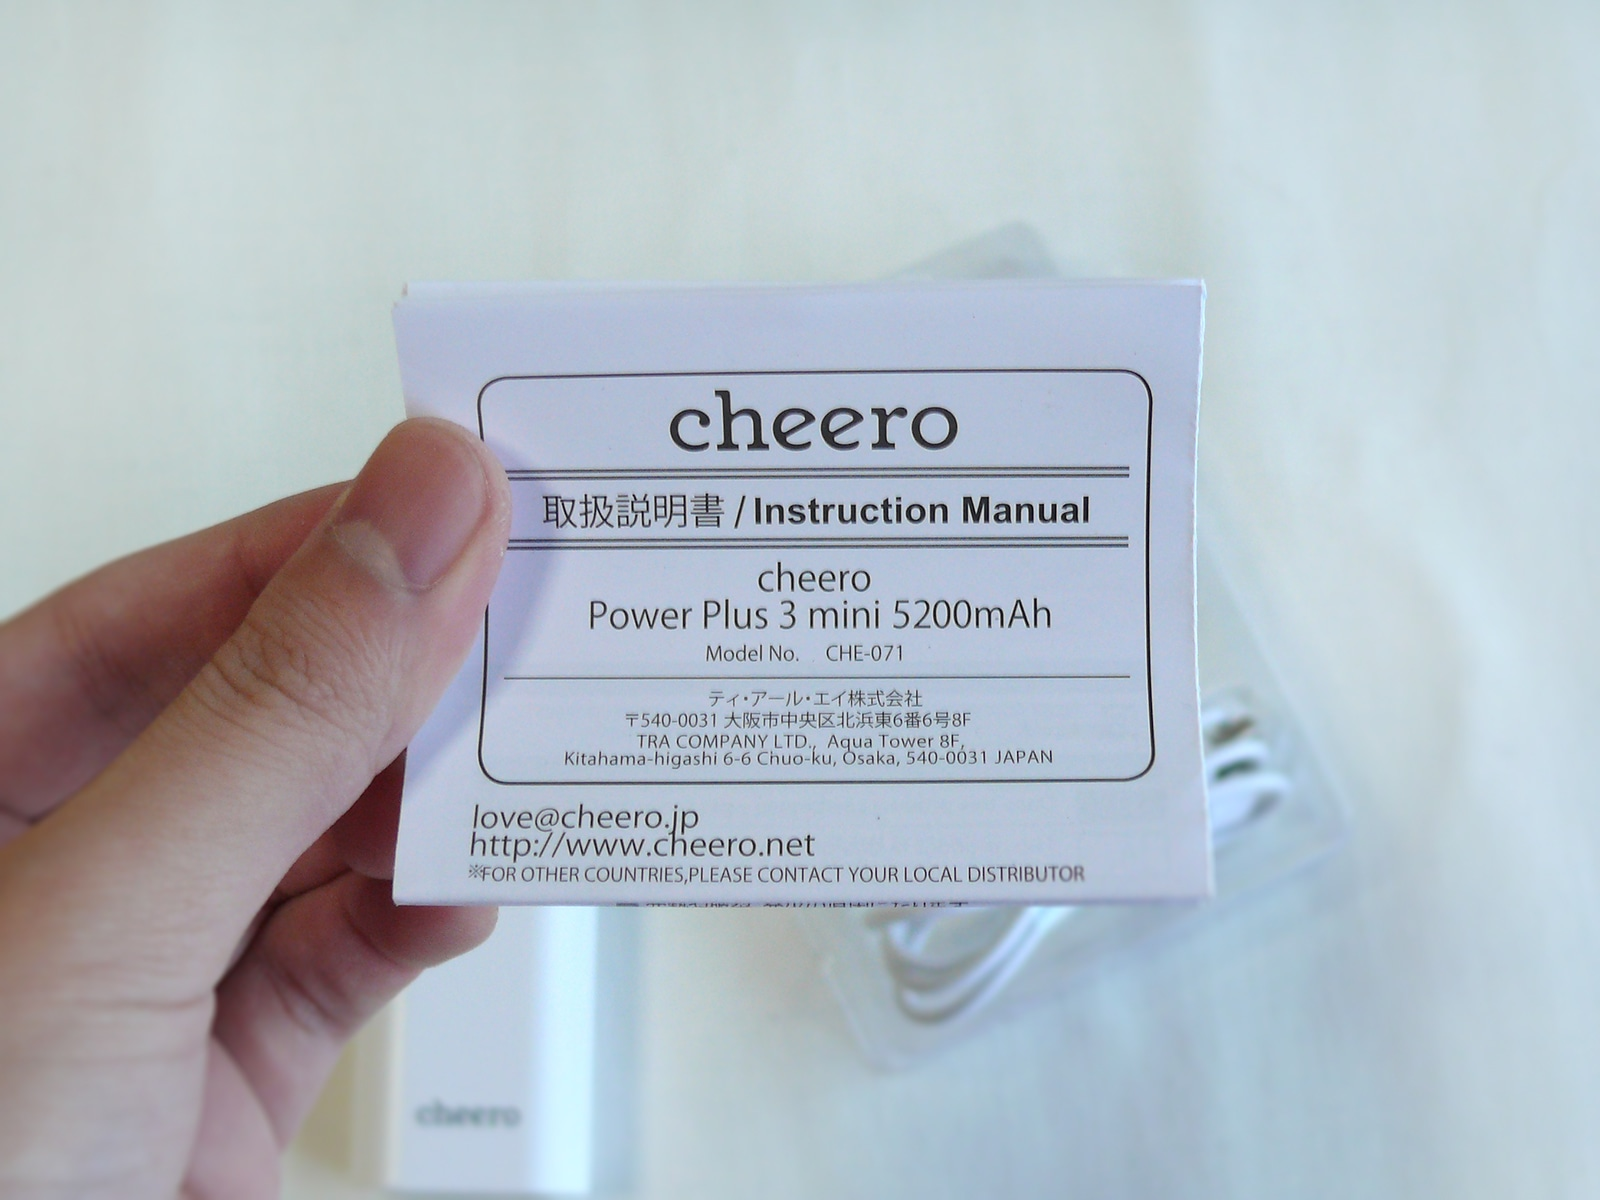 cheero Power Plus 3 mini 5200mAh 開封 説明書